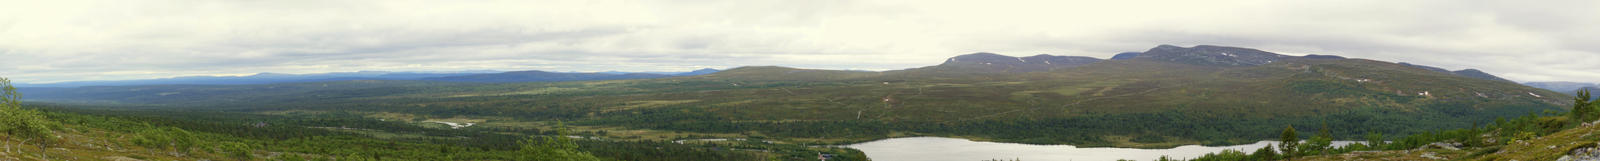 Panorama from Grovelsjofjallet by fastidious-cat